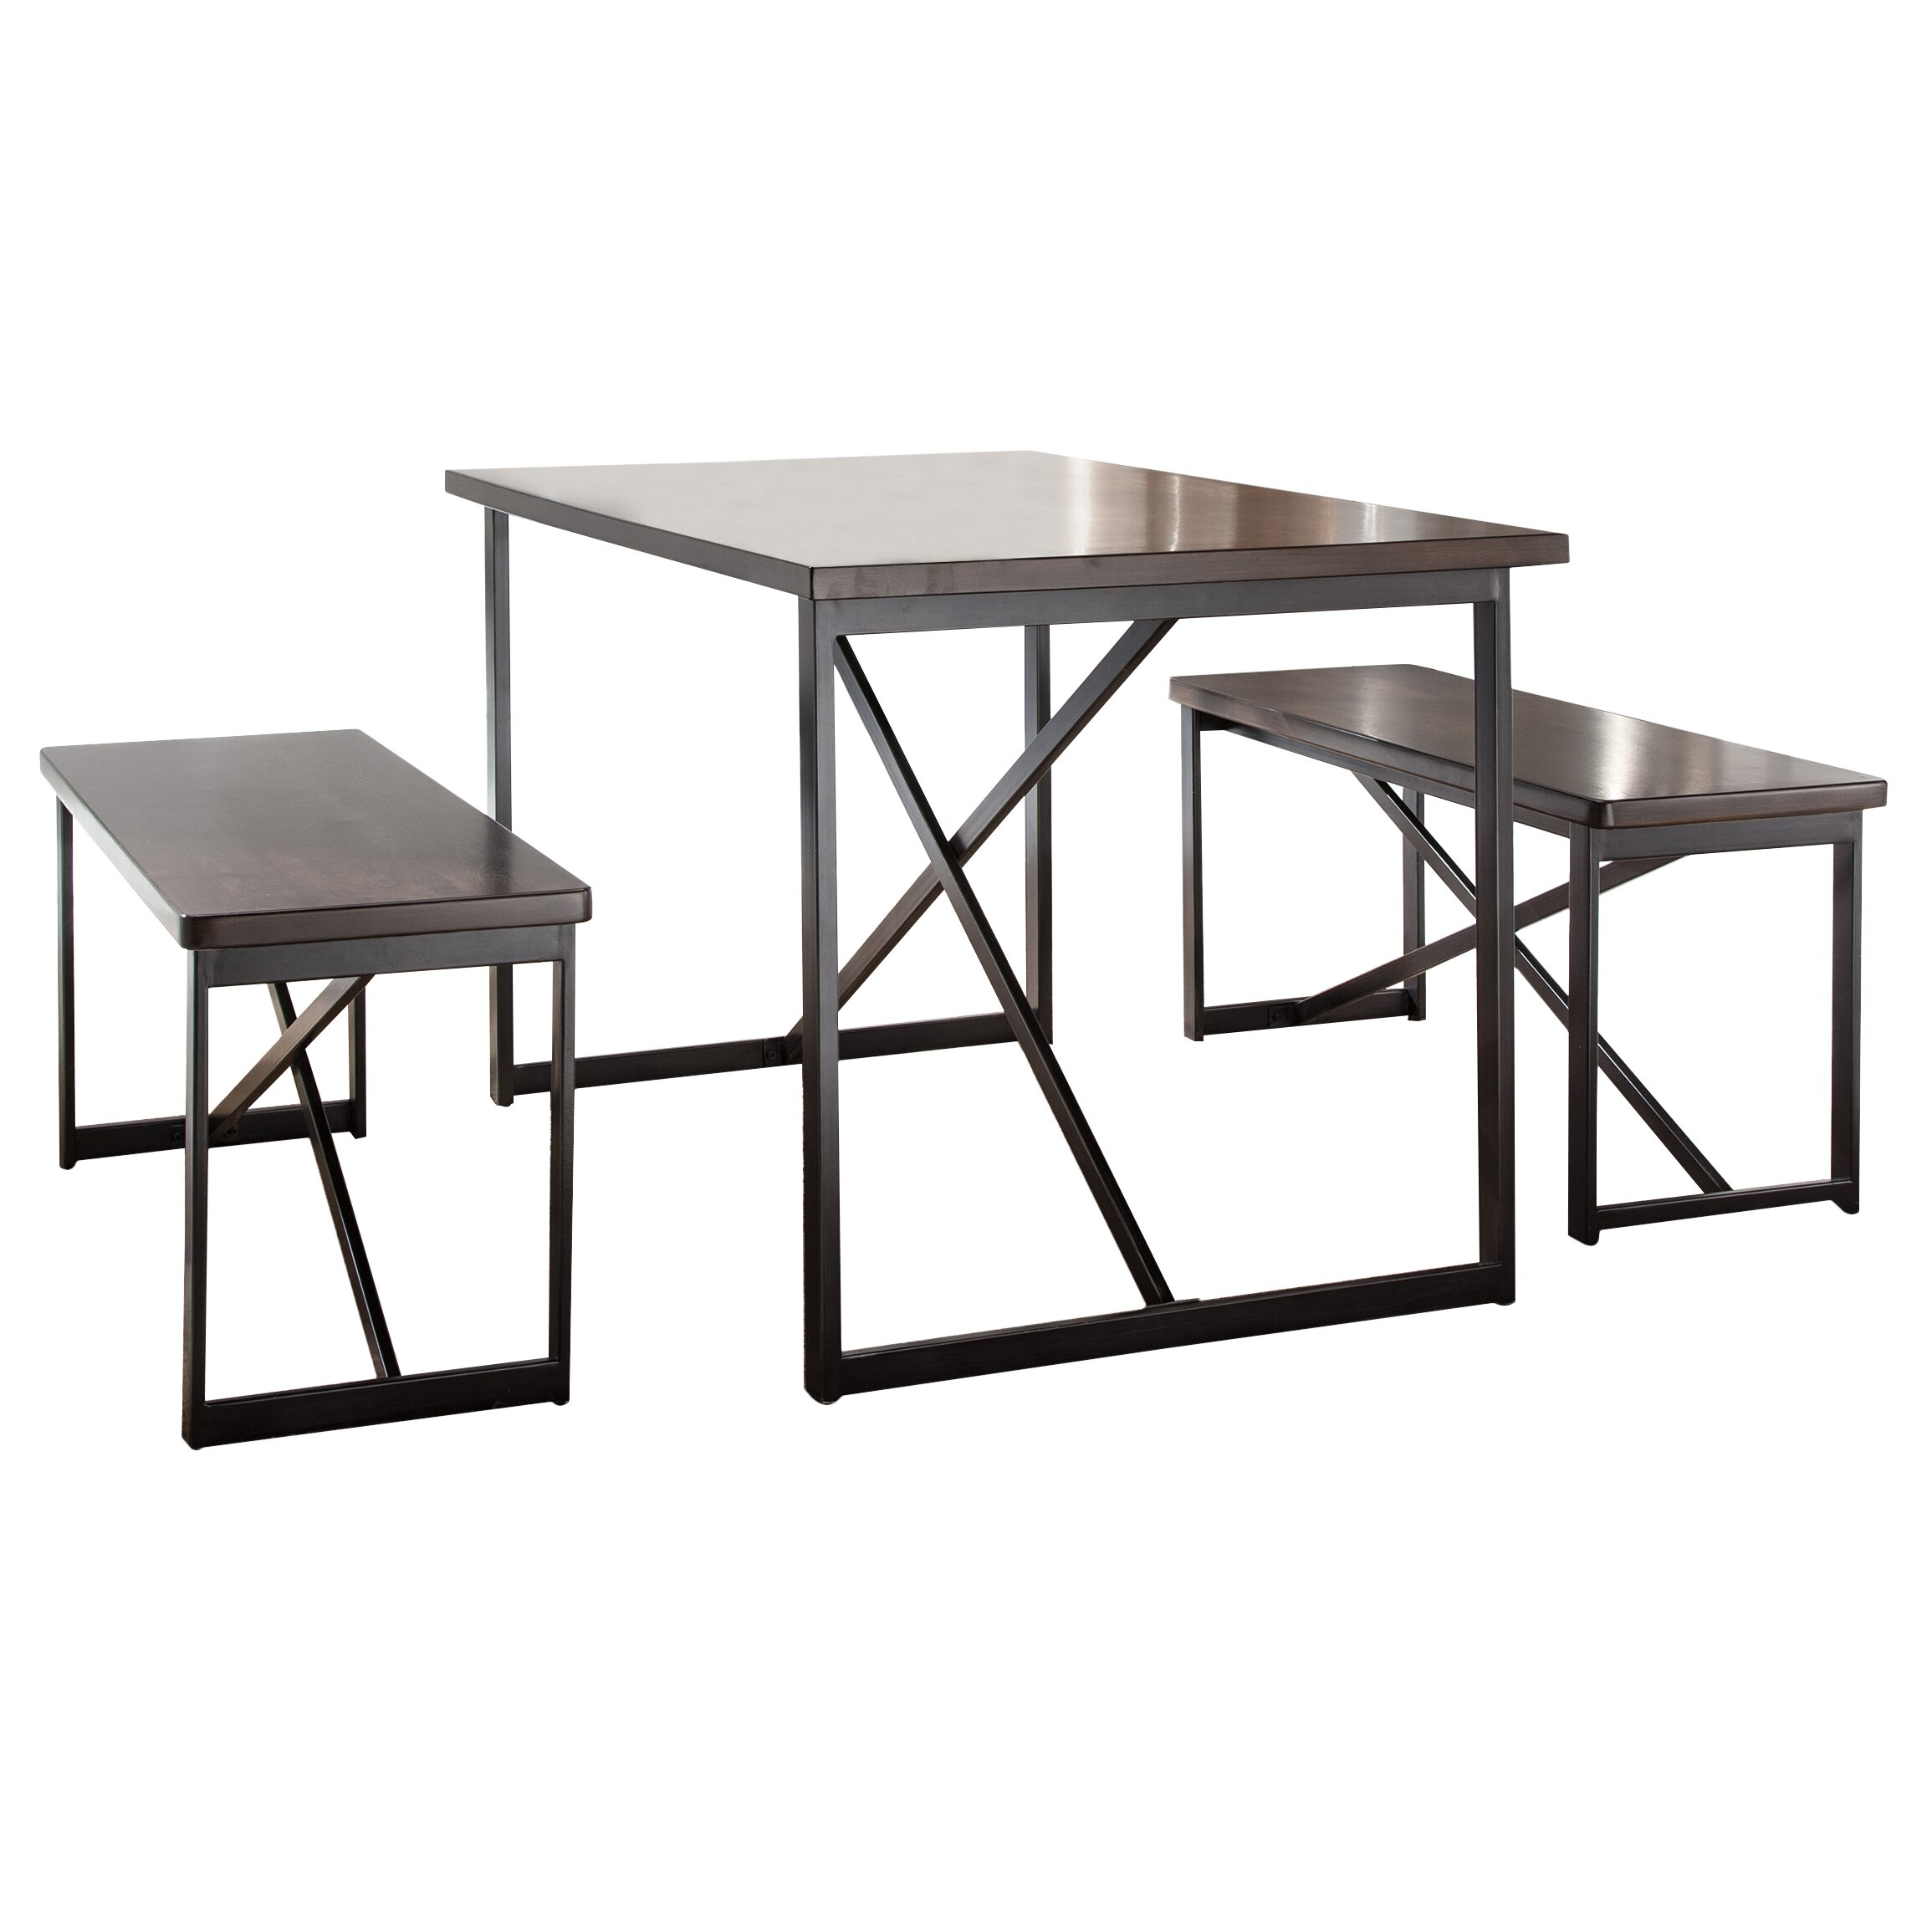 Signature design by ashley joring 3 piece dining set for 3 piece dining room set